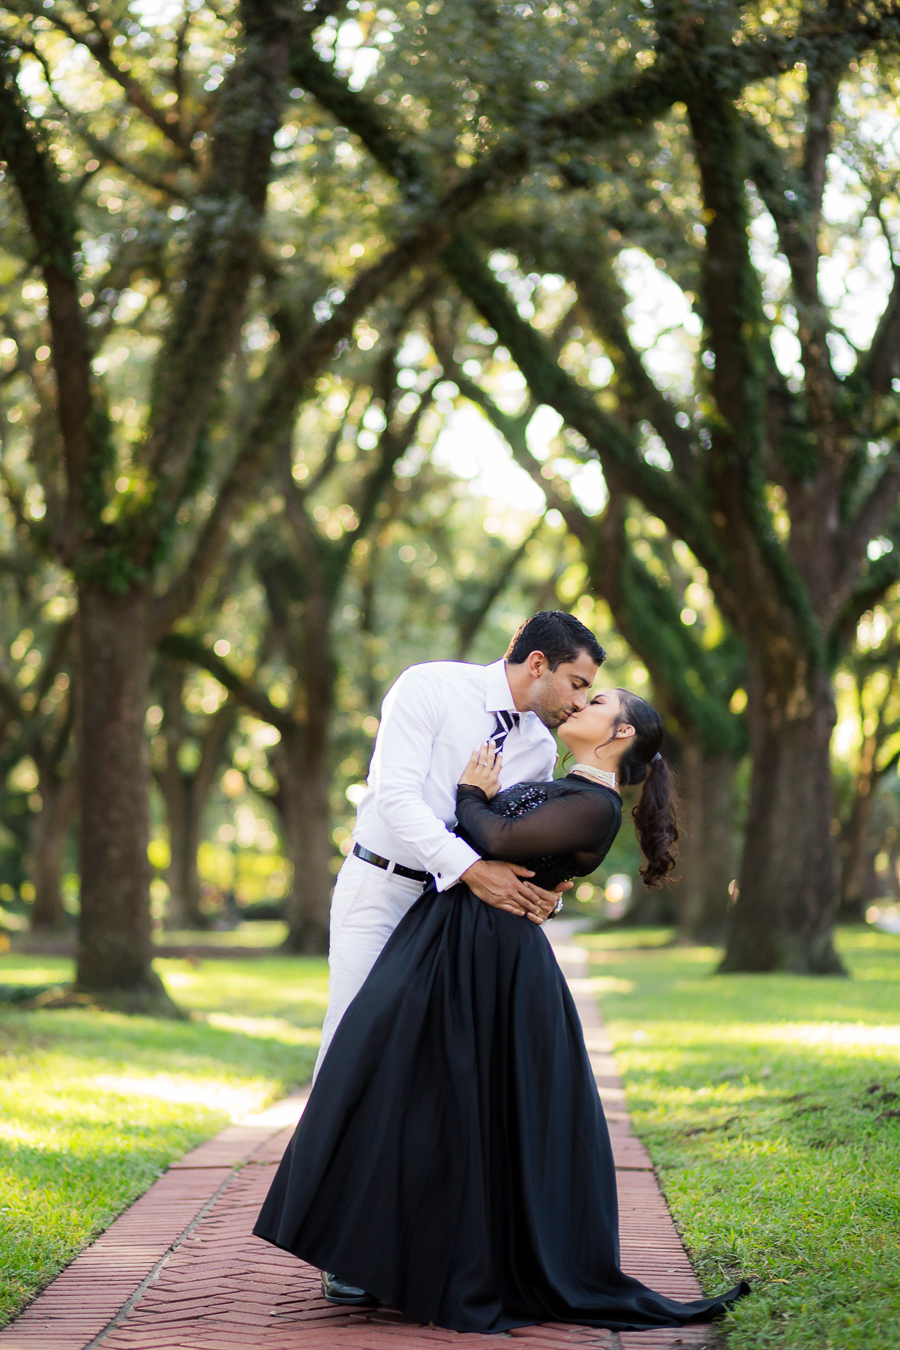 Houston Engagement Photographer - Jessica Pledger Photography